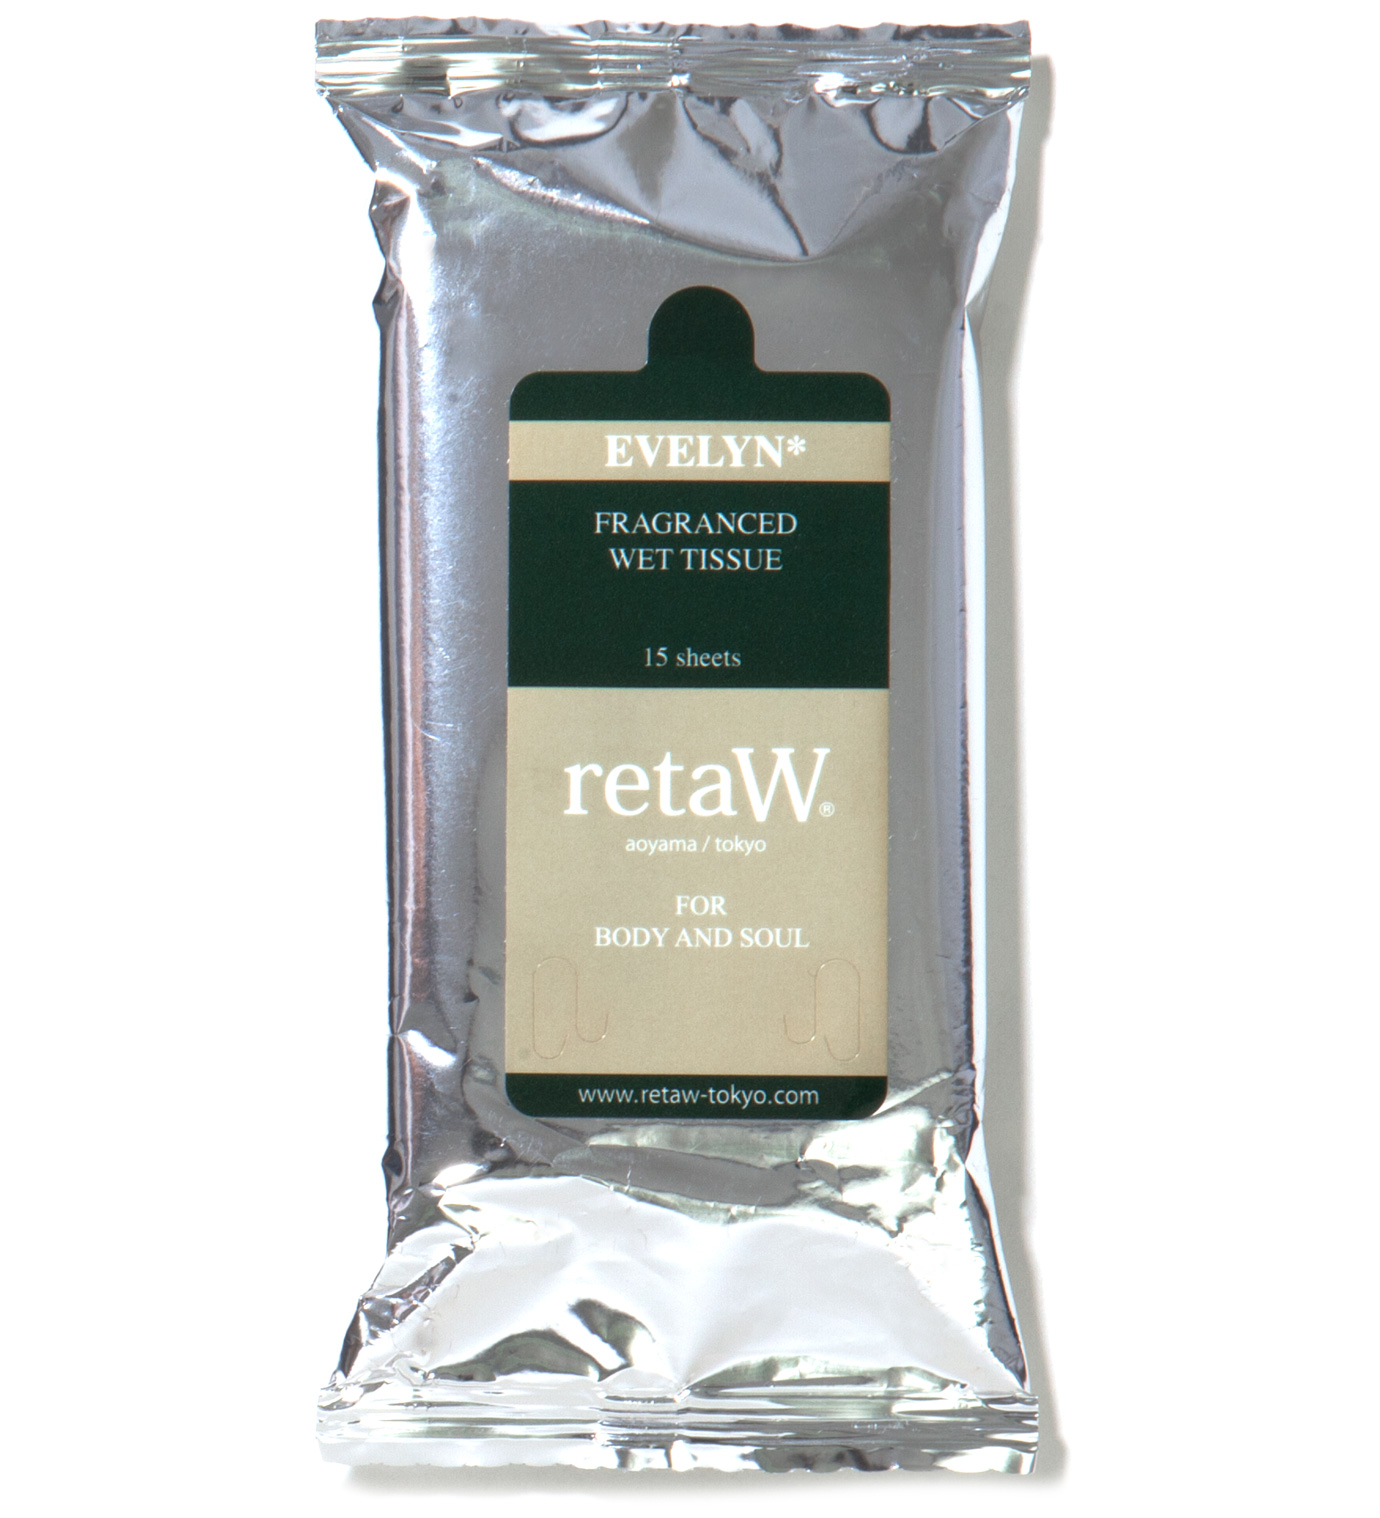 retaW Evelyn Fragranced Wet Tissue